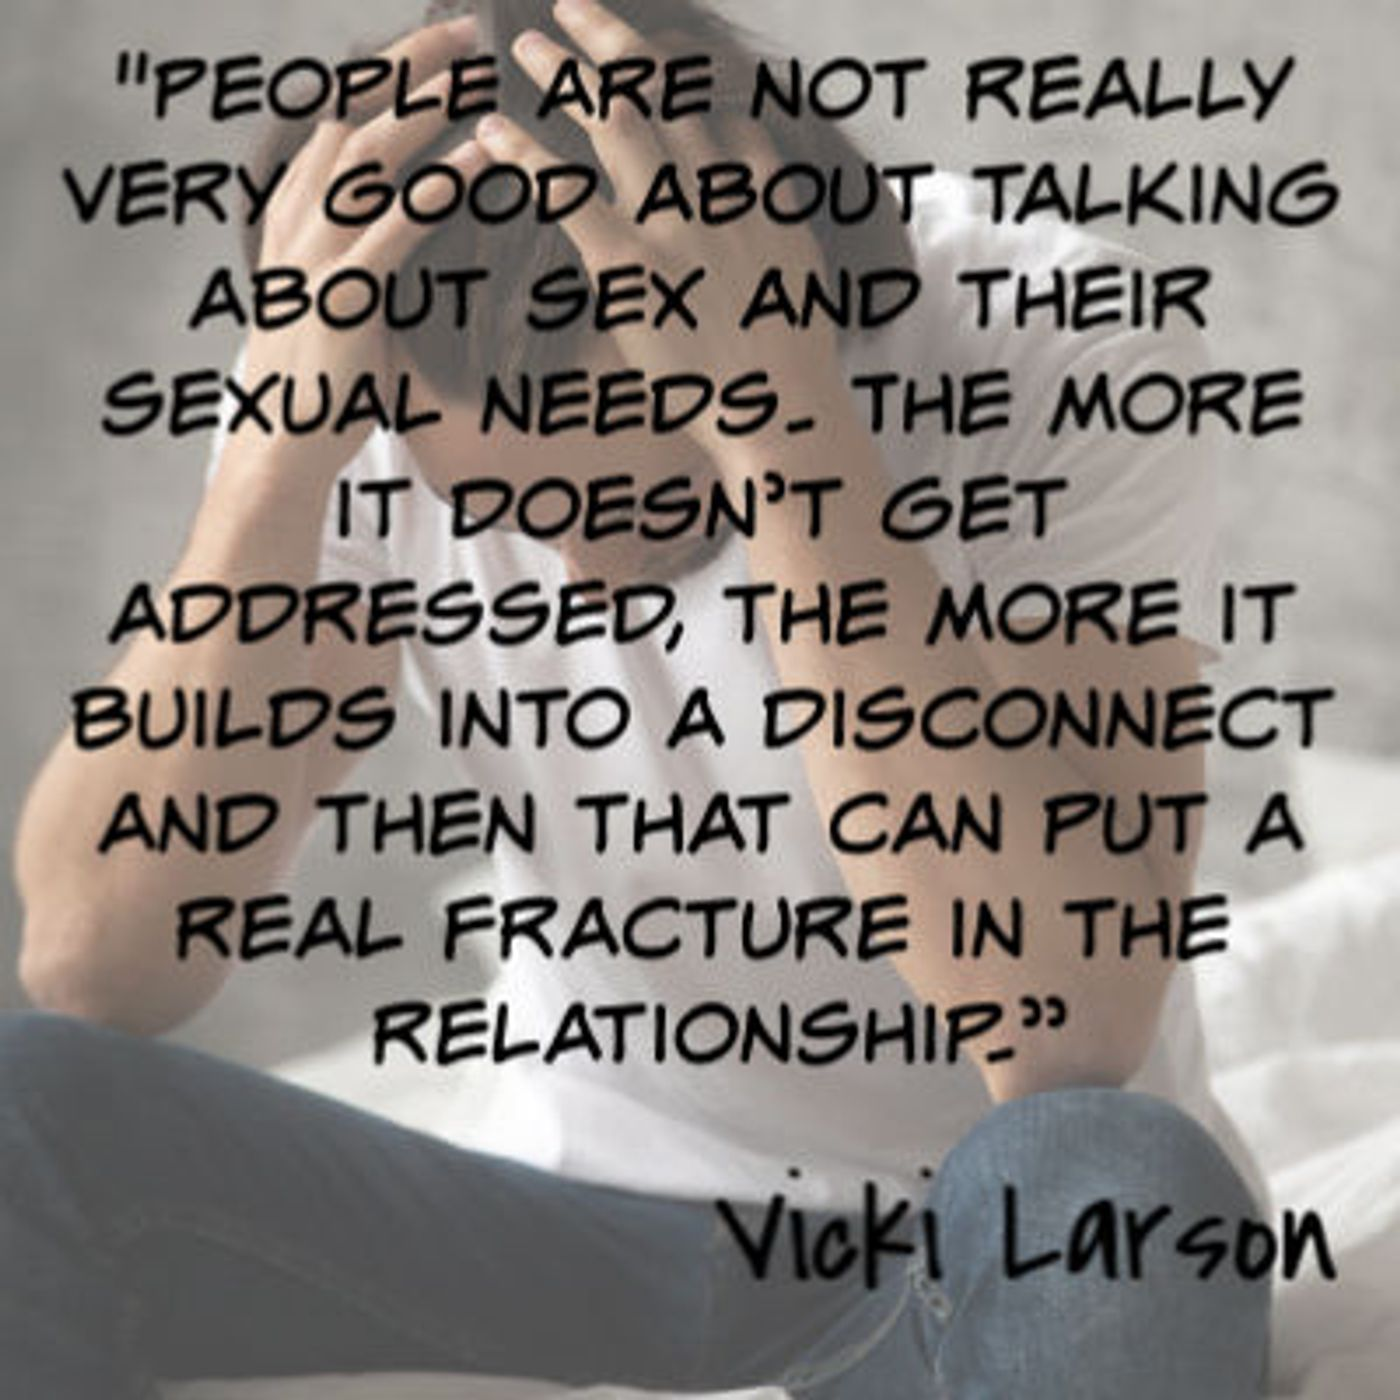 Conversations About Divorce - Should You Divorce If Your Marriage Is Sexless?